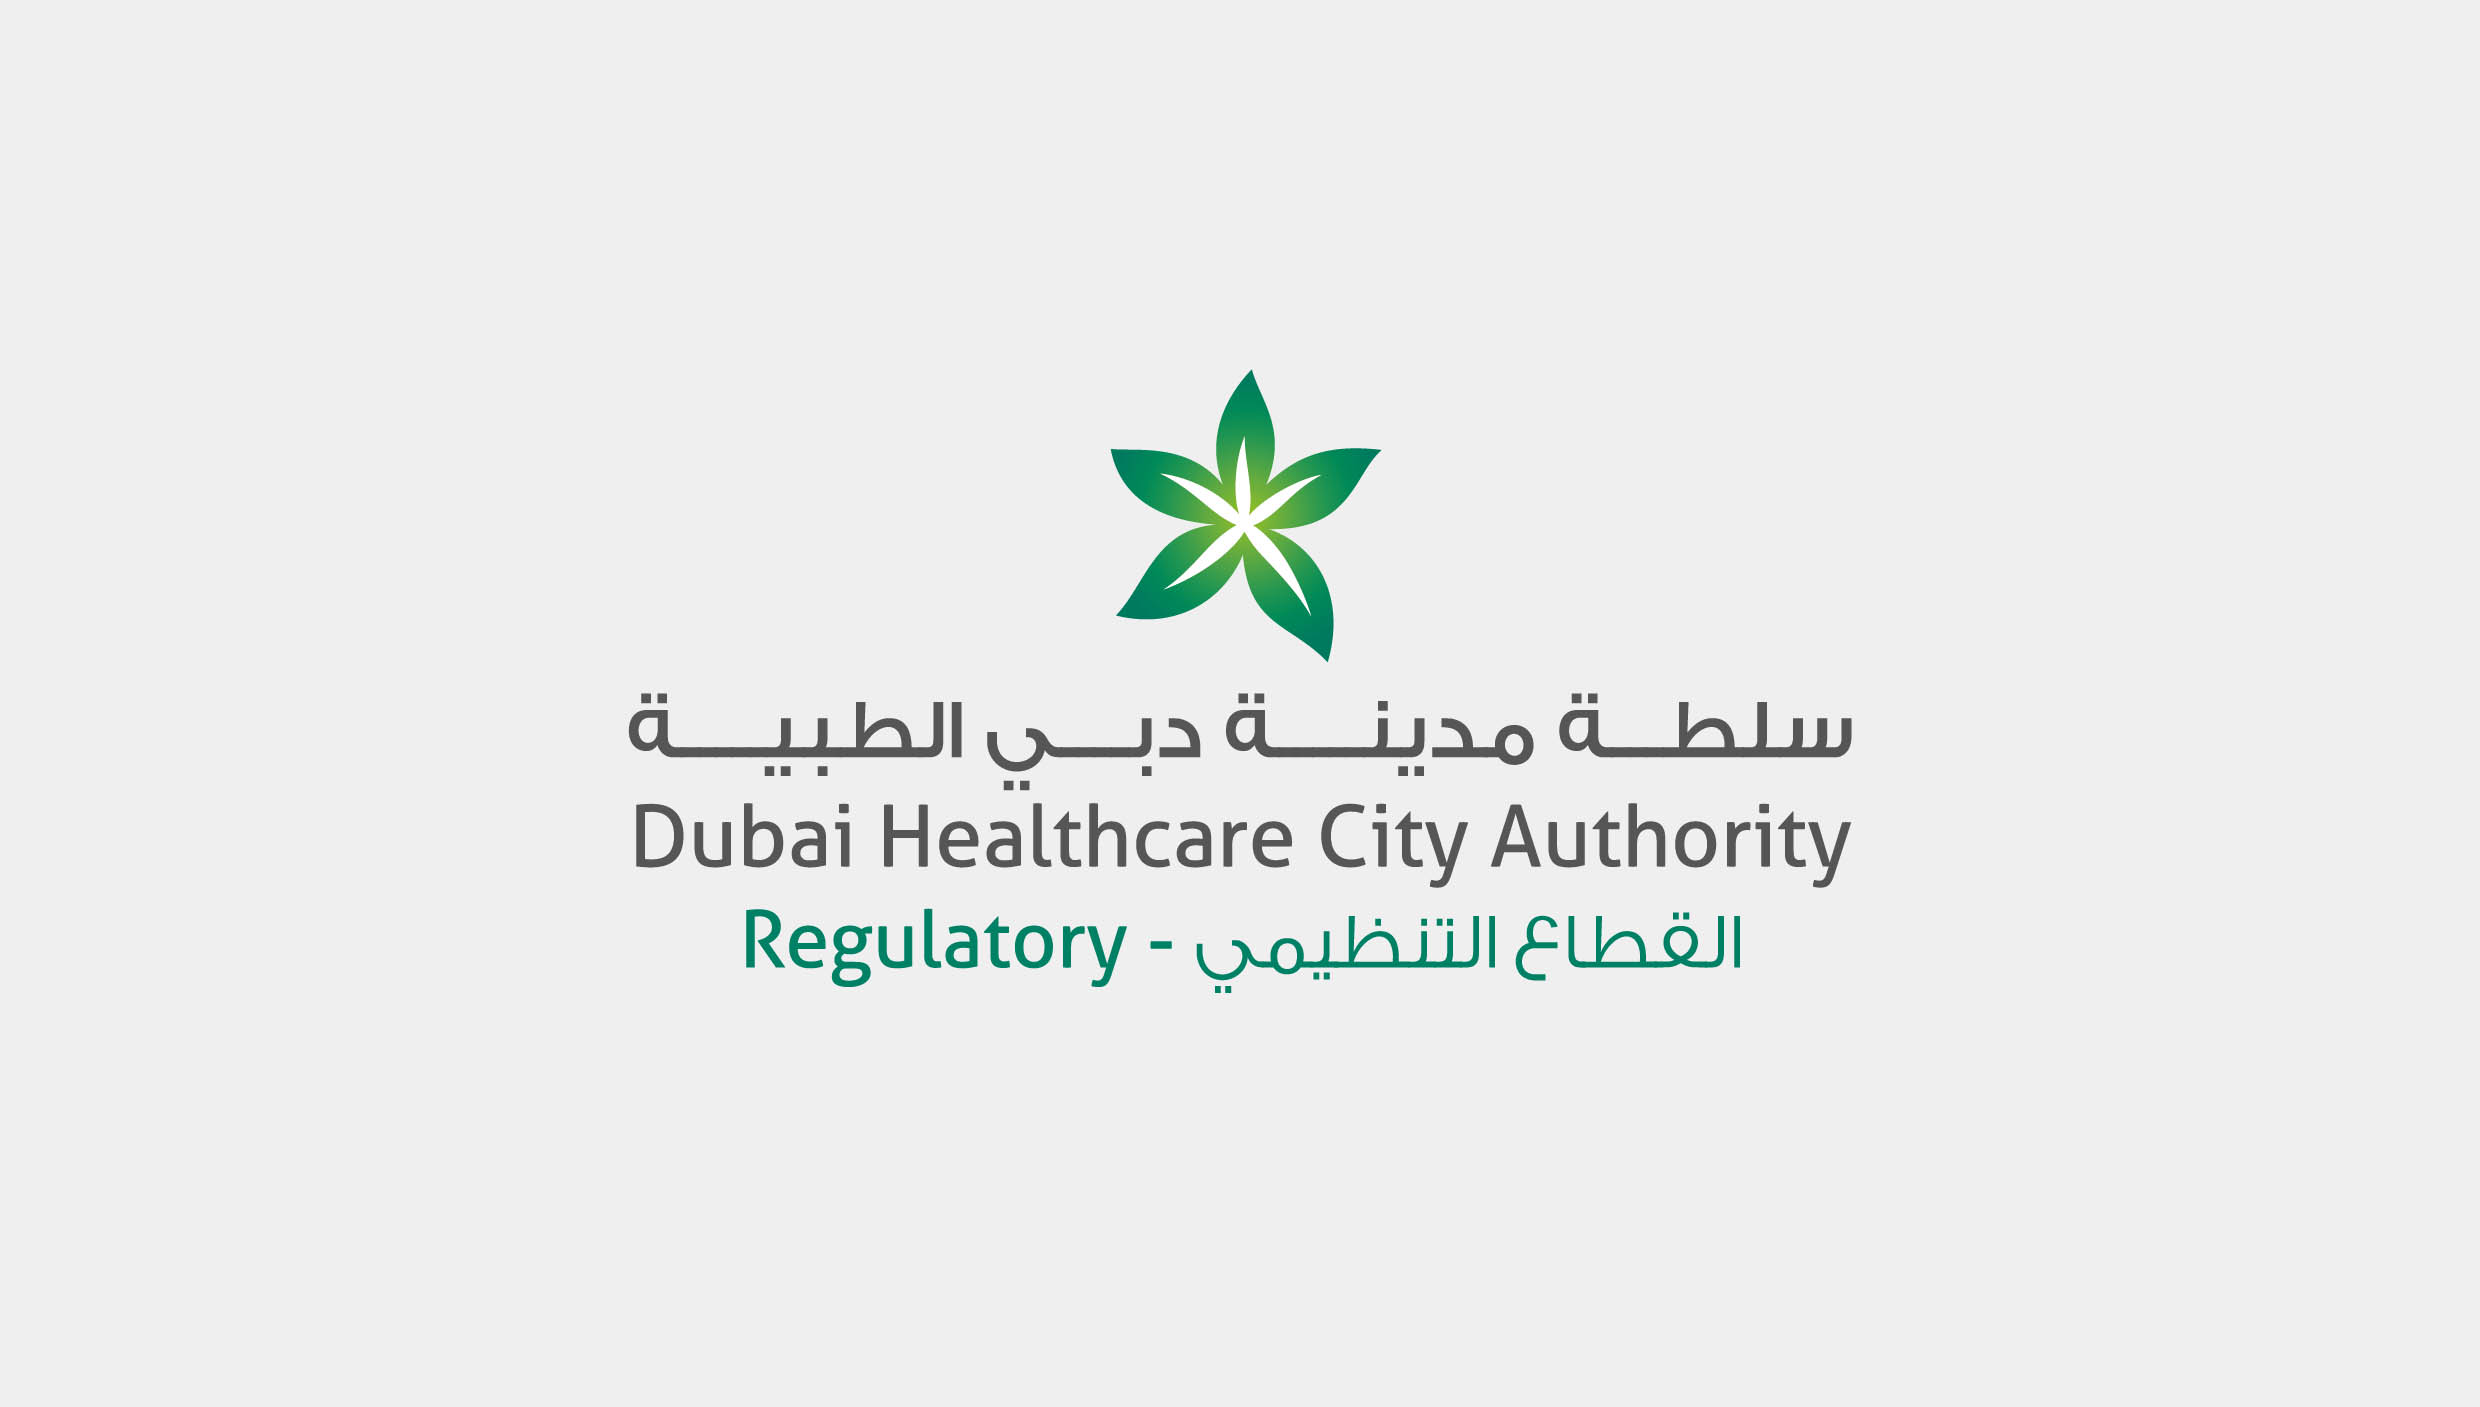 DUBAI HEALTHCARE CITY AUTHORITY ANNOUNCES PLANS TO BECOME THE UAE'S FIRST NATIONAL HEALTHCARE ACCREDITING BODY